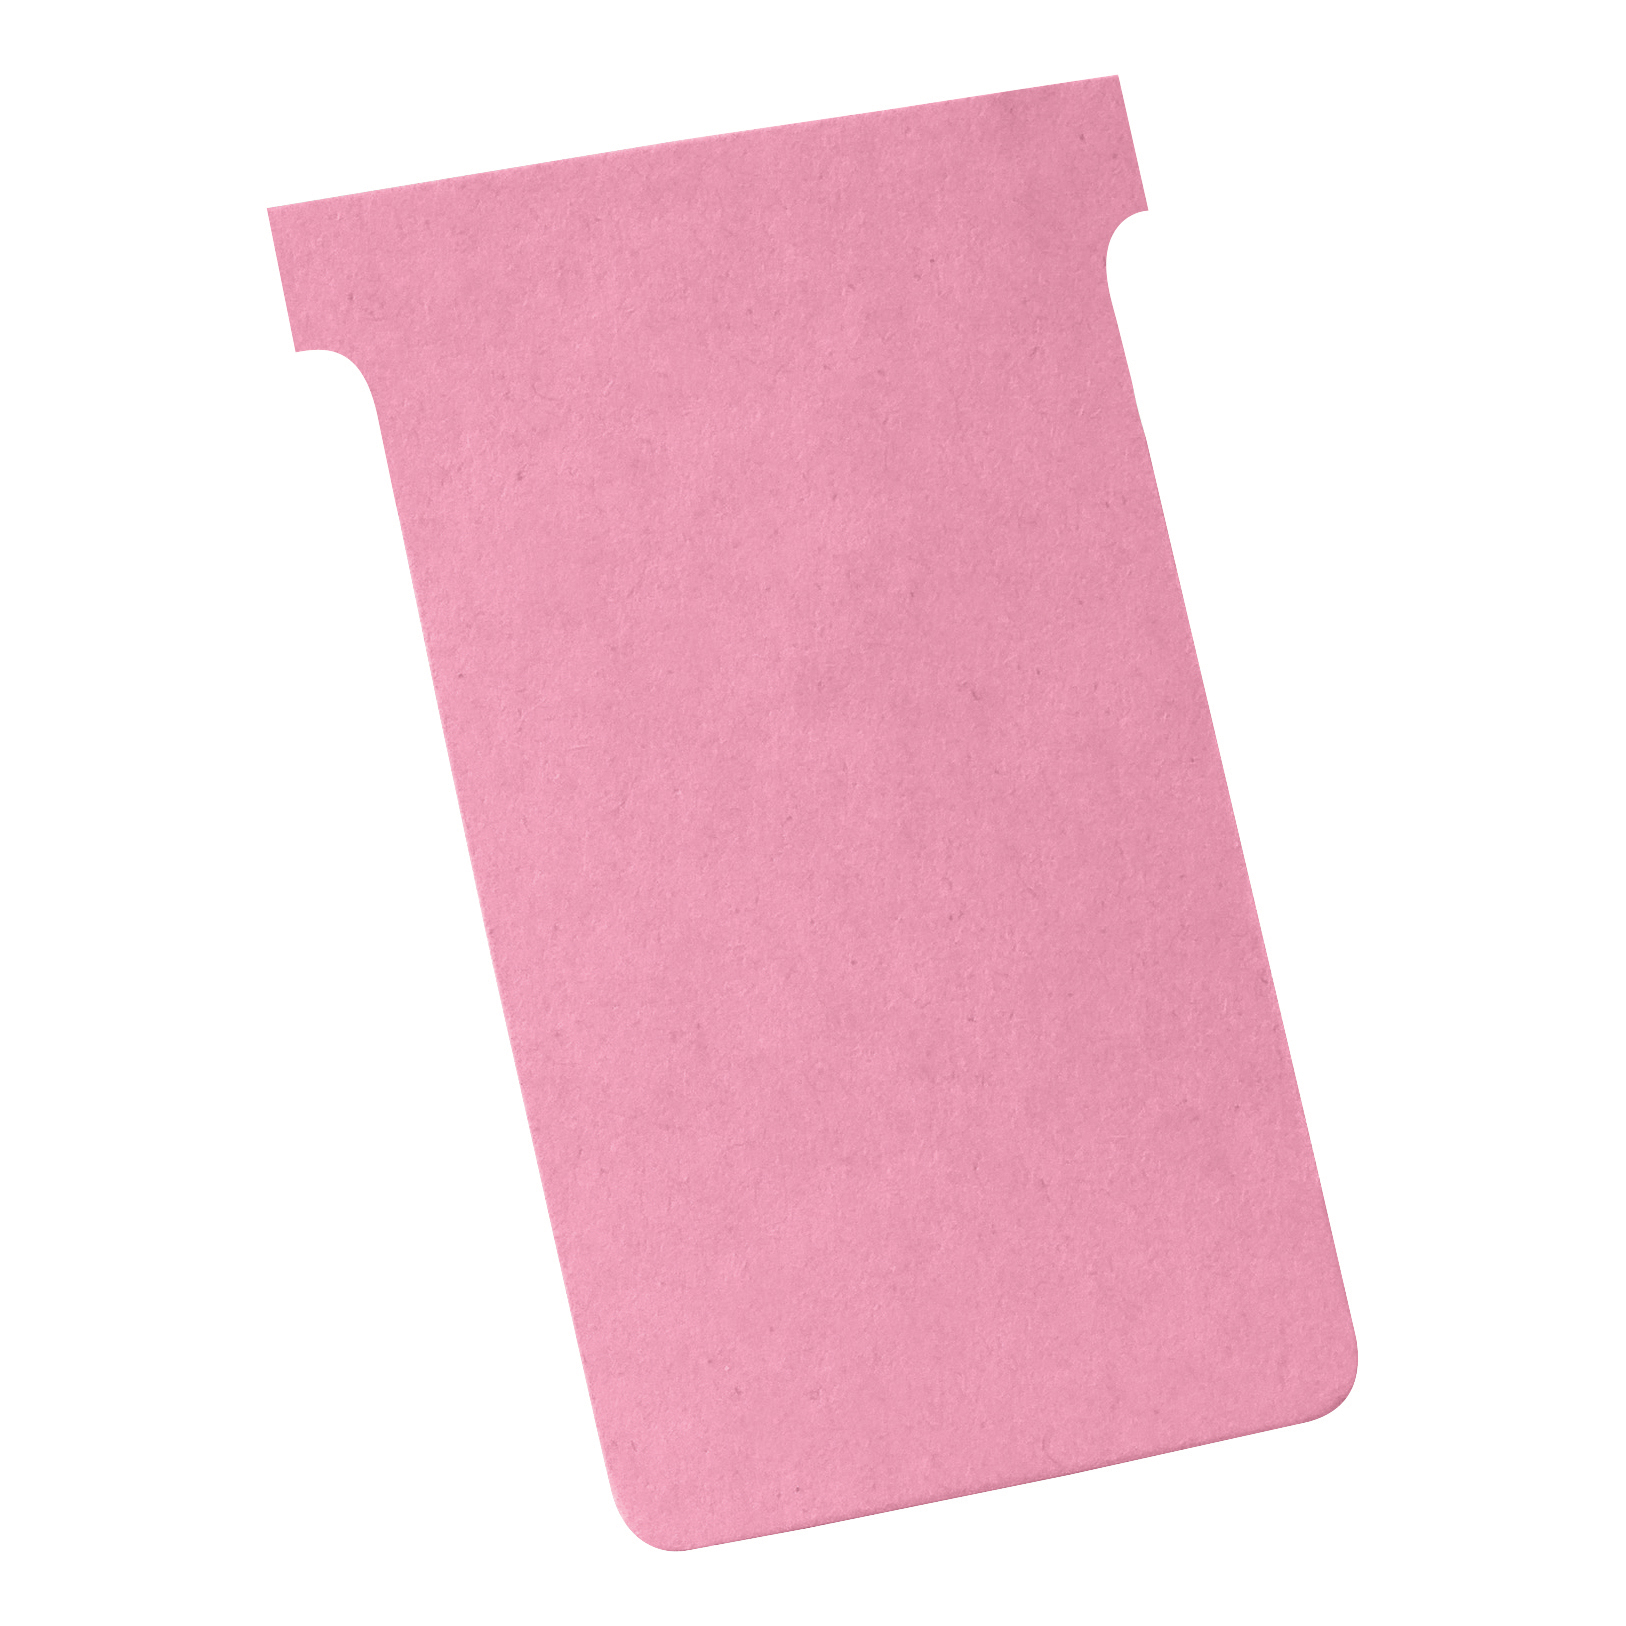 Nobo T-Cards 160gsm Tab Top 15mm W124x Bottom W112x Full H180mm Size 4 Light Pink Ref 2004008 [Pack 100]